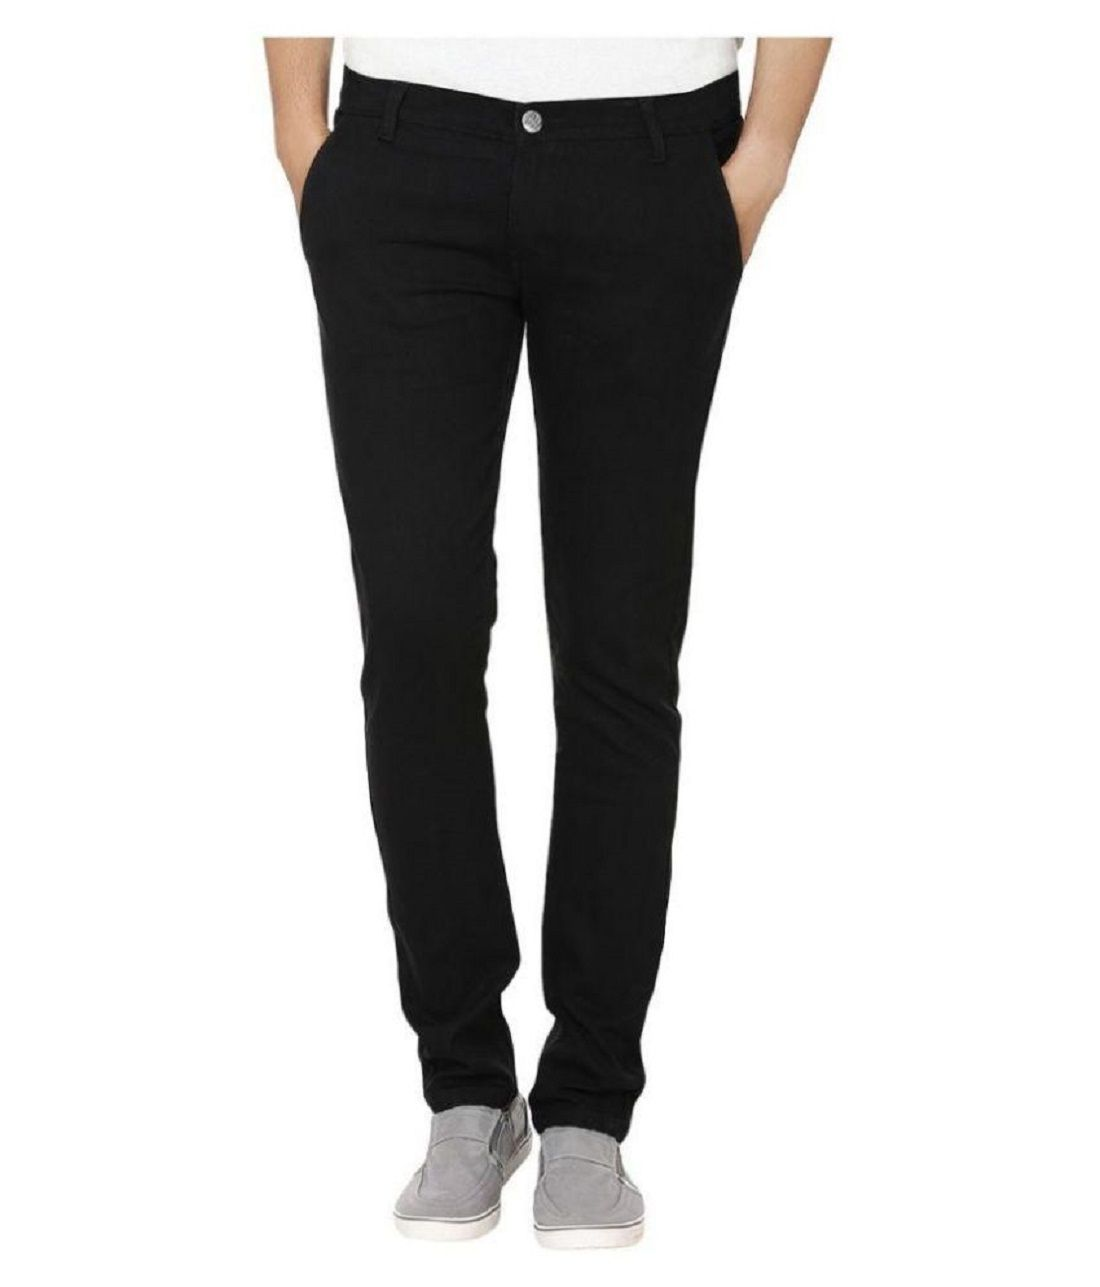 b5f43da9 Urbano Fashion Black Slim Jeans - Buy Urbano Fashion Black Slim Jeans  Online at Best Prices in India on Snapdeal